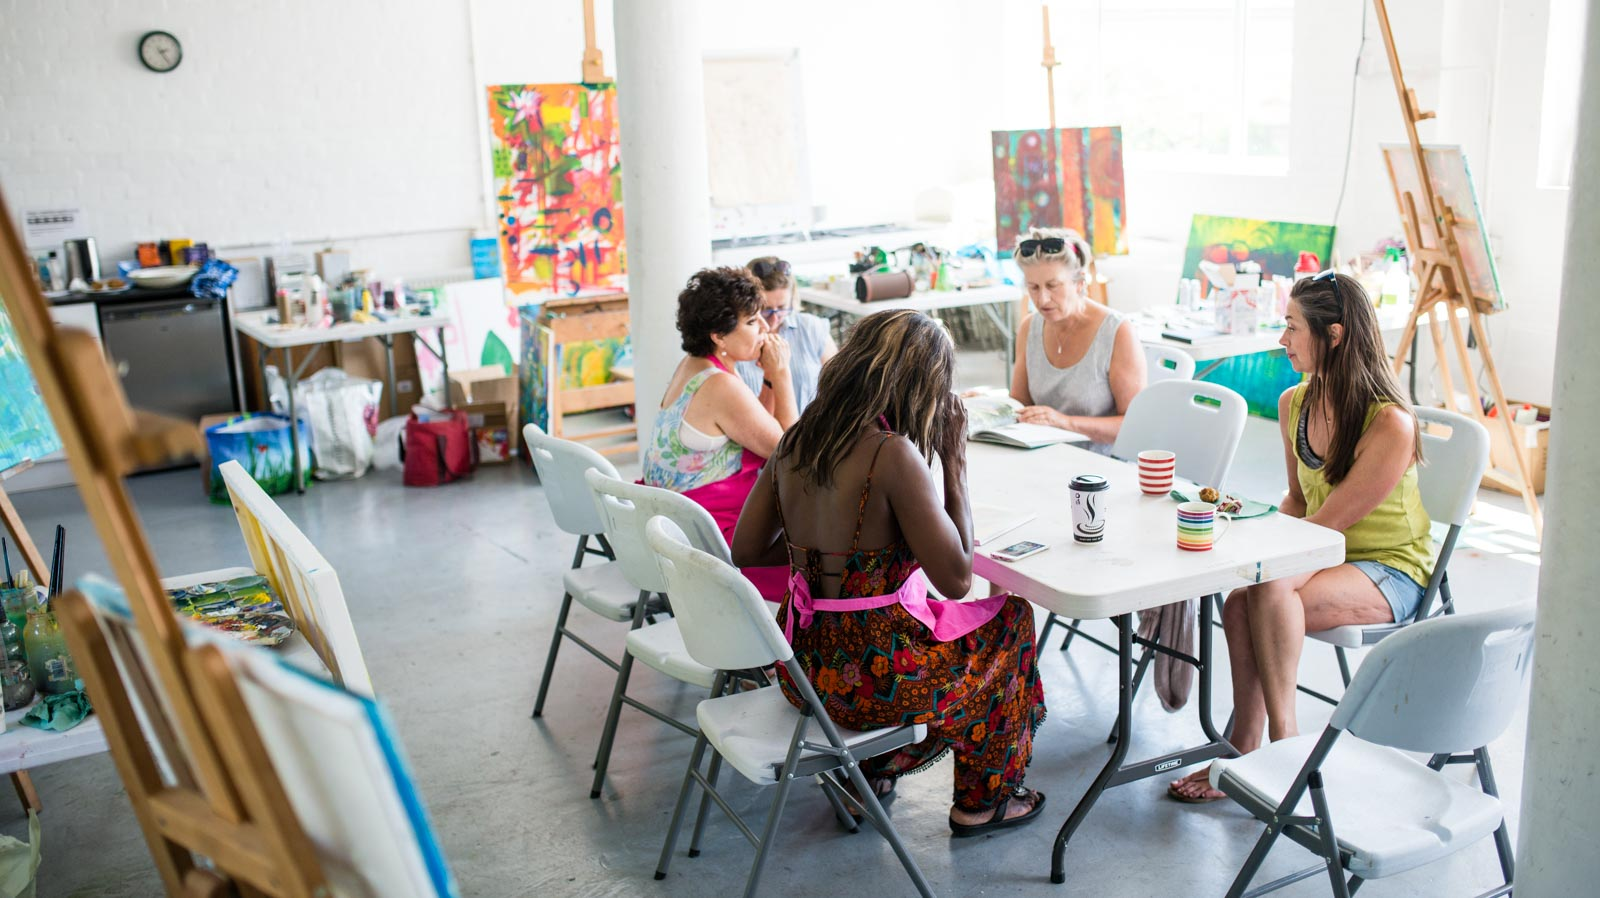 Wild Painting Workshop Event with Personal Brand Portrait Photographer from Brighton & London